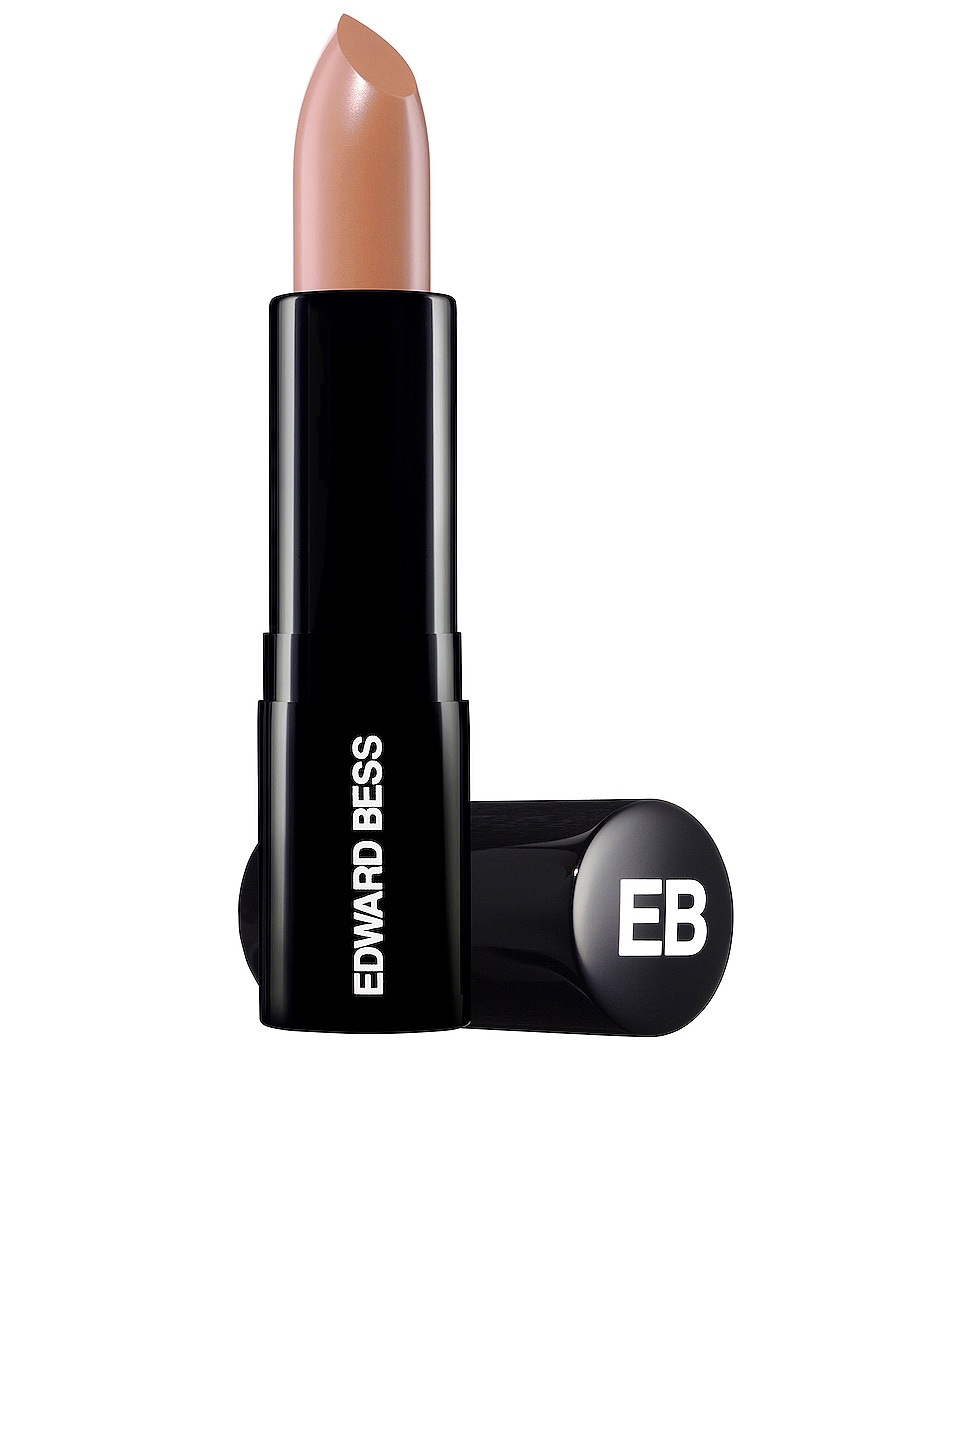 Edward Bess Ultra Slick Lipstick in Nude Lotus